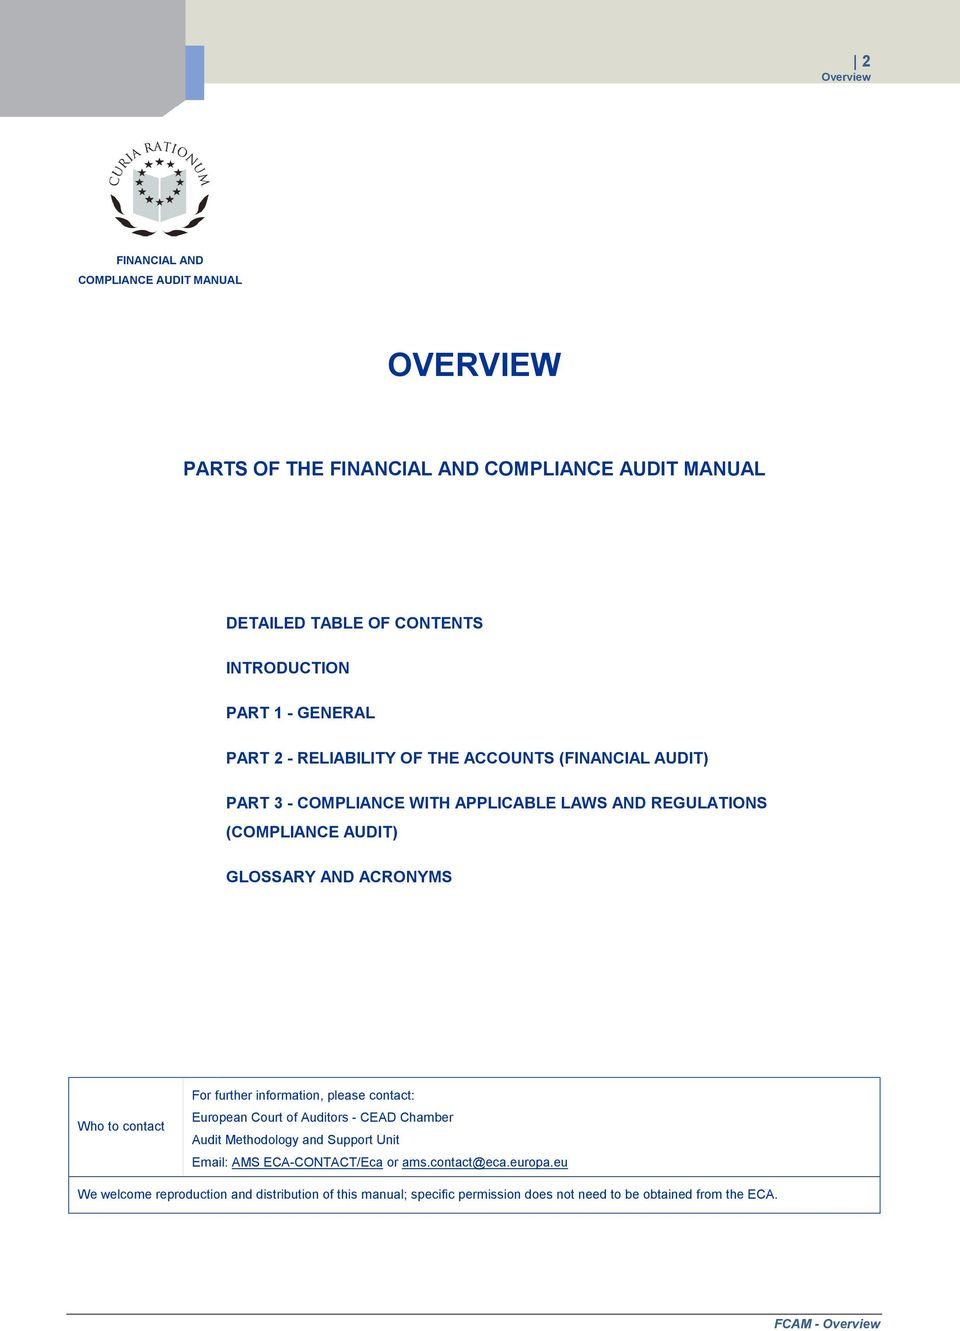 Who to contact For further information, please contact: European Court of  Auditors - CEAD